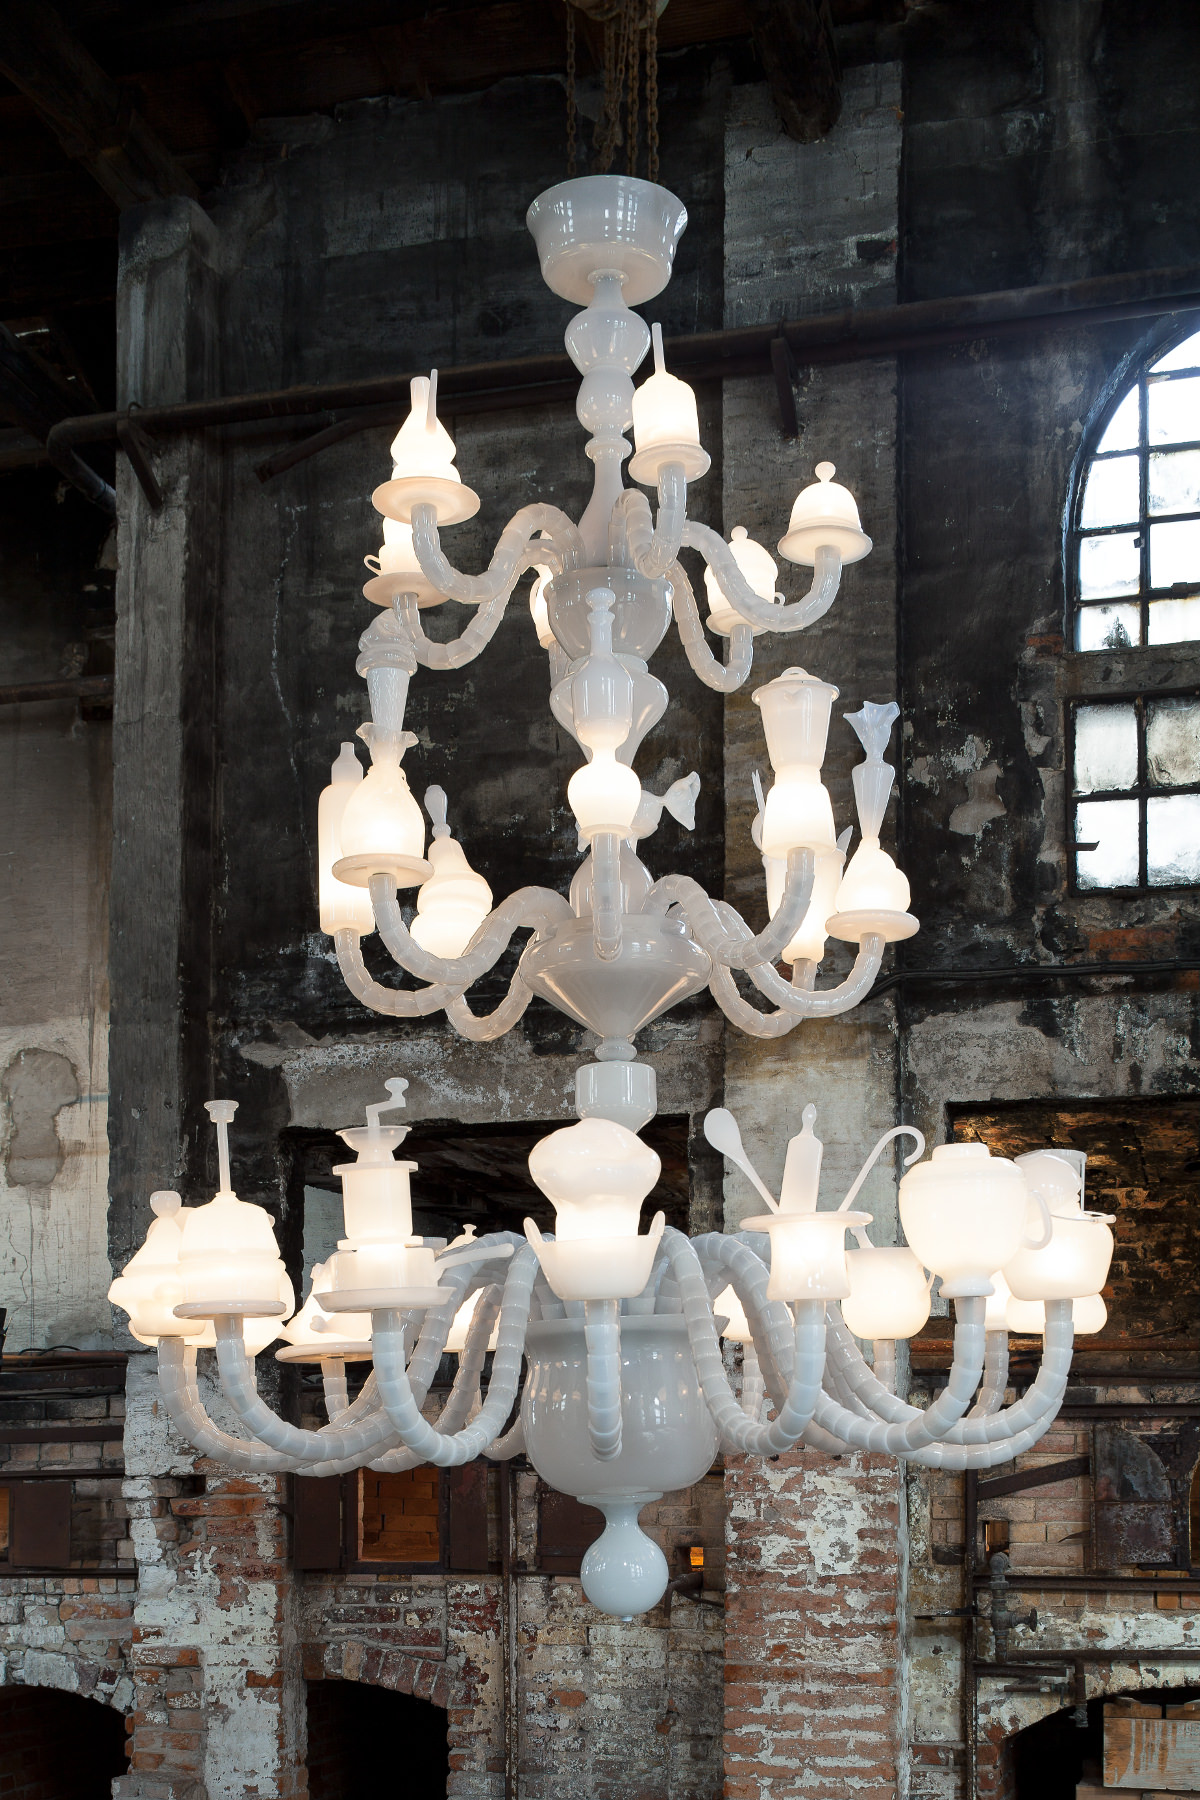 Kiki & Joost - Dining stories chandelier